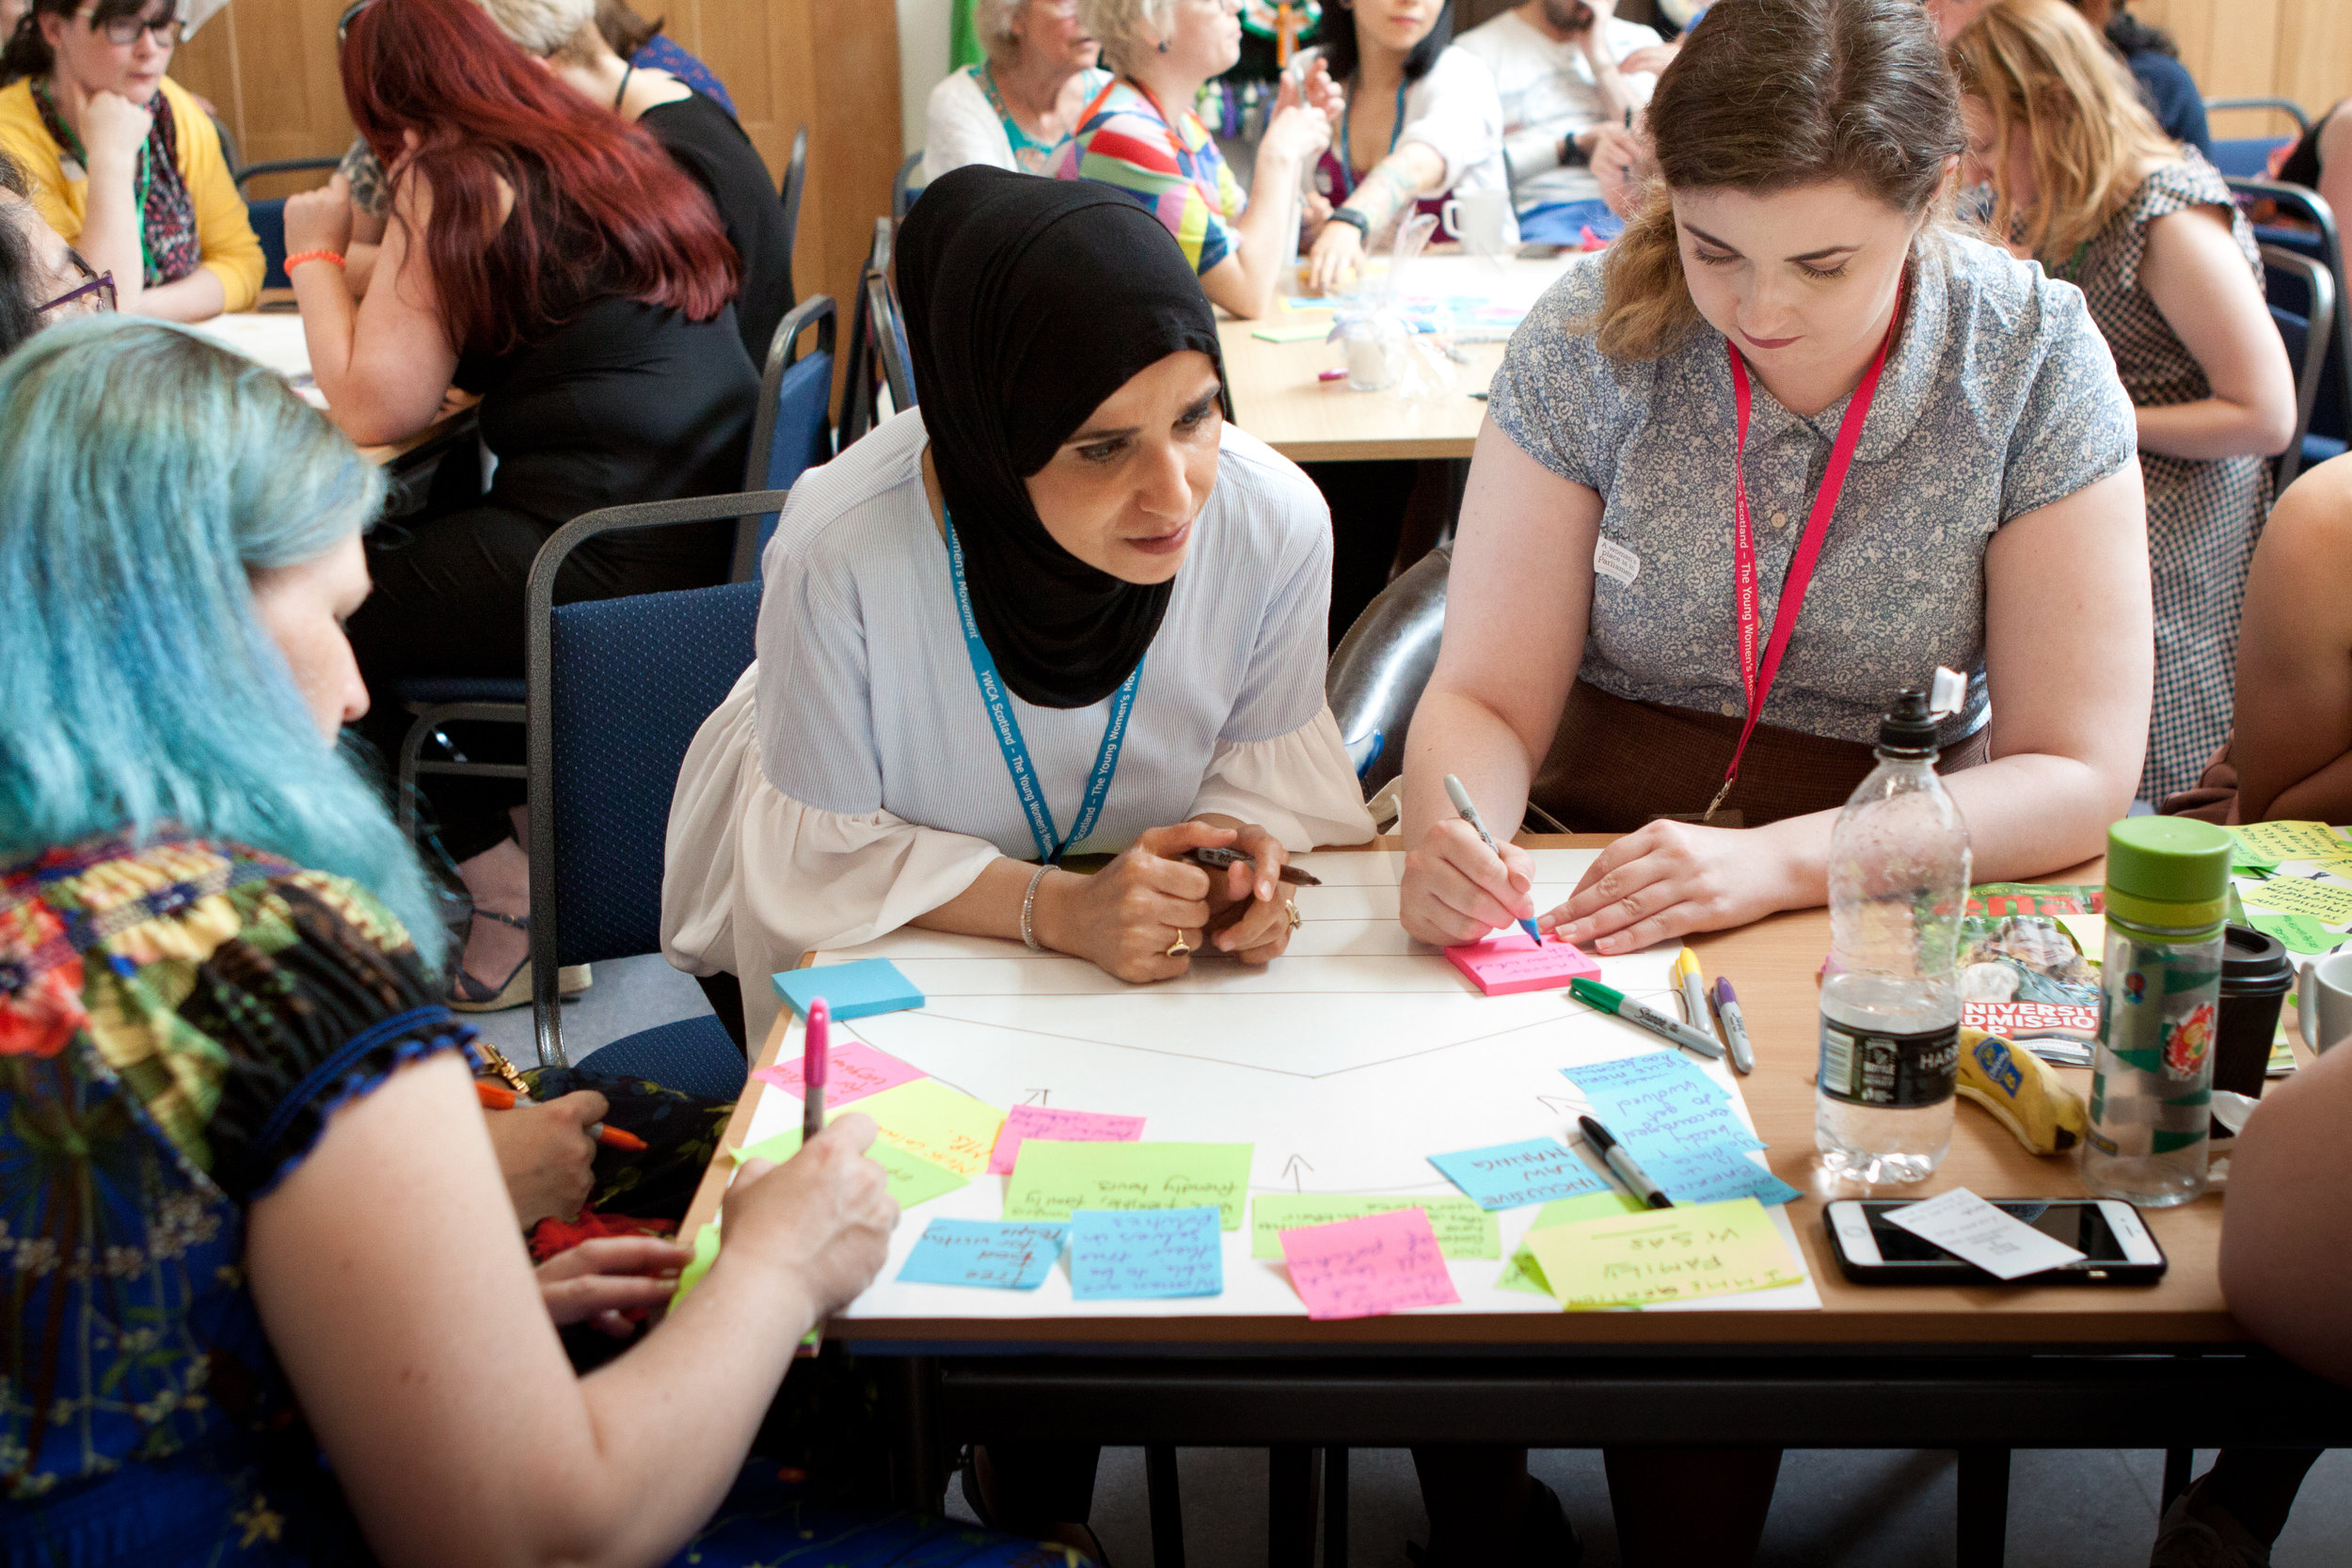 Three women strategise around a table with post-it notes at a Parliament Project event.